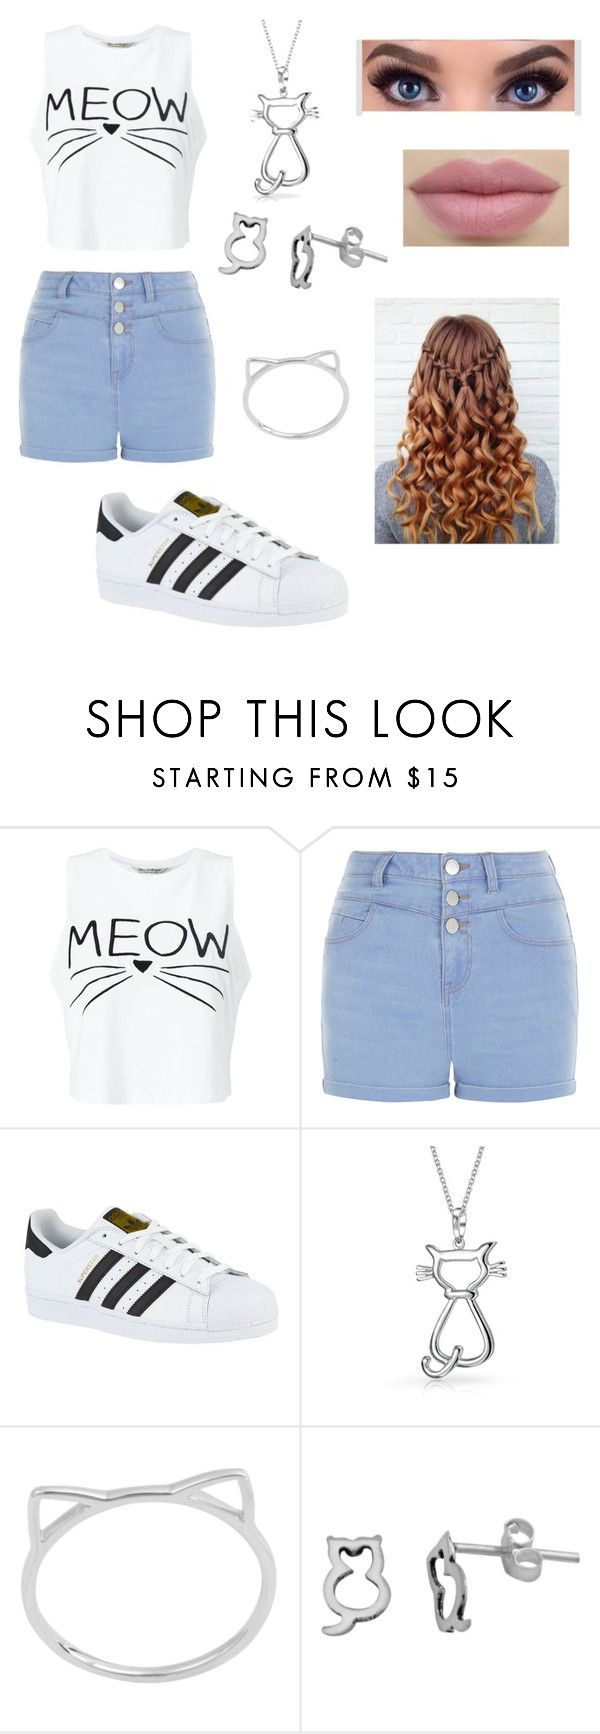 """The cats meaw🐱🐱"" by mildred140501-1 ❤ liked on Polyvore featuring beauty, Miss Selfridge, New Look, adidas, Bling Jewelry, Midsummer Star and Itsy Bitsy"